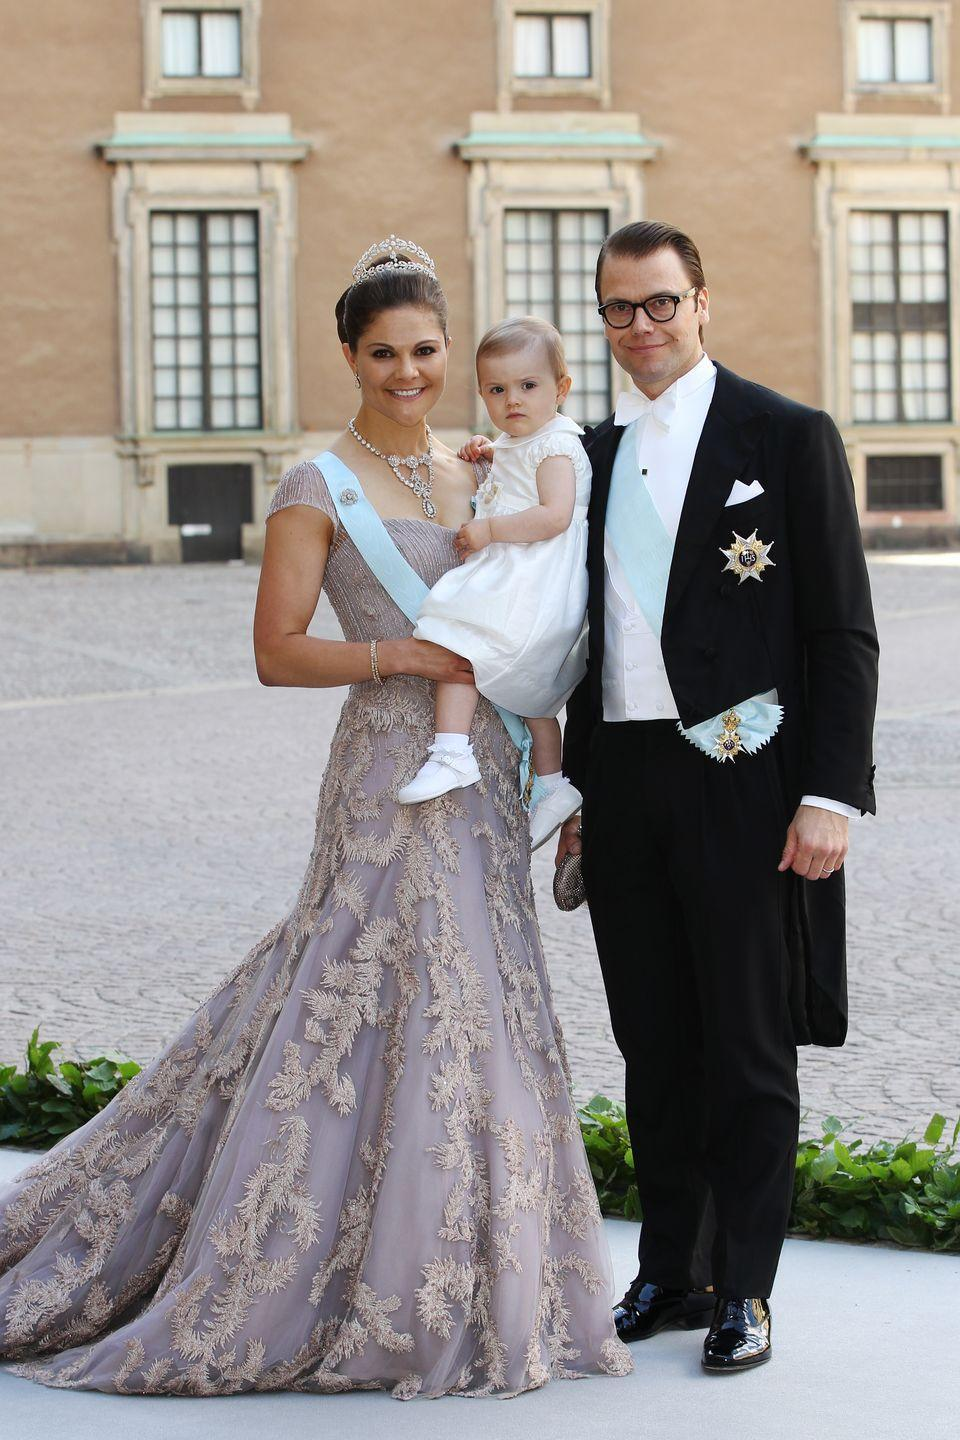 <p>The Crown Princess of Sweden is the eldest daughter of King Carl XVI Gustaf and the heir apparent to the throne. Here she is at the wedding of her sister Princess Madeleine, in Fadi El Khoury Couture, with her husband and daughter. </p>